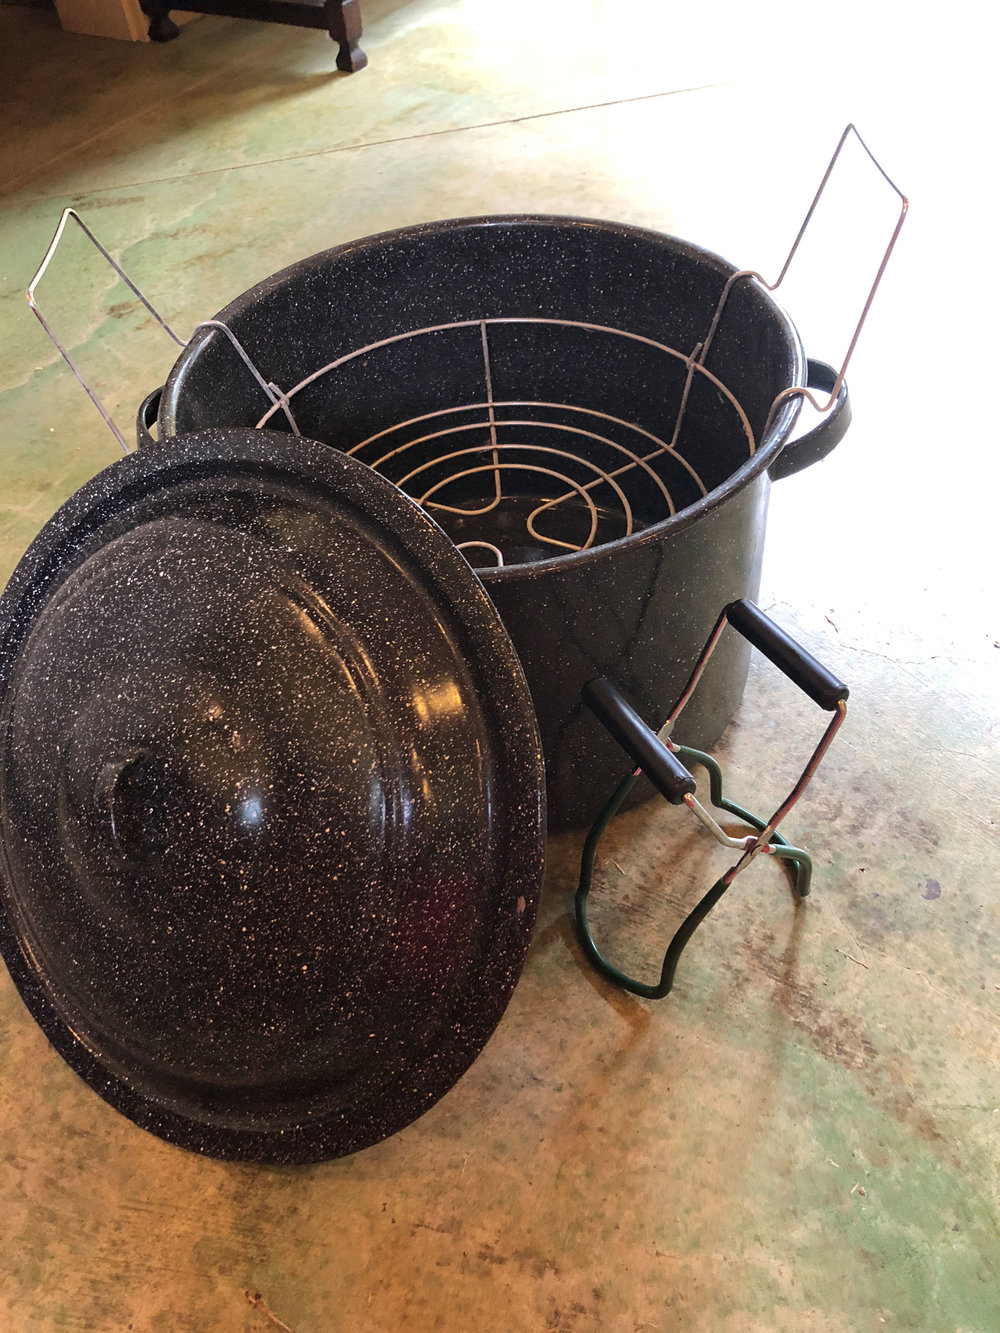 Canning pot with lid and rack; jar grippers.